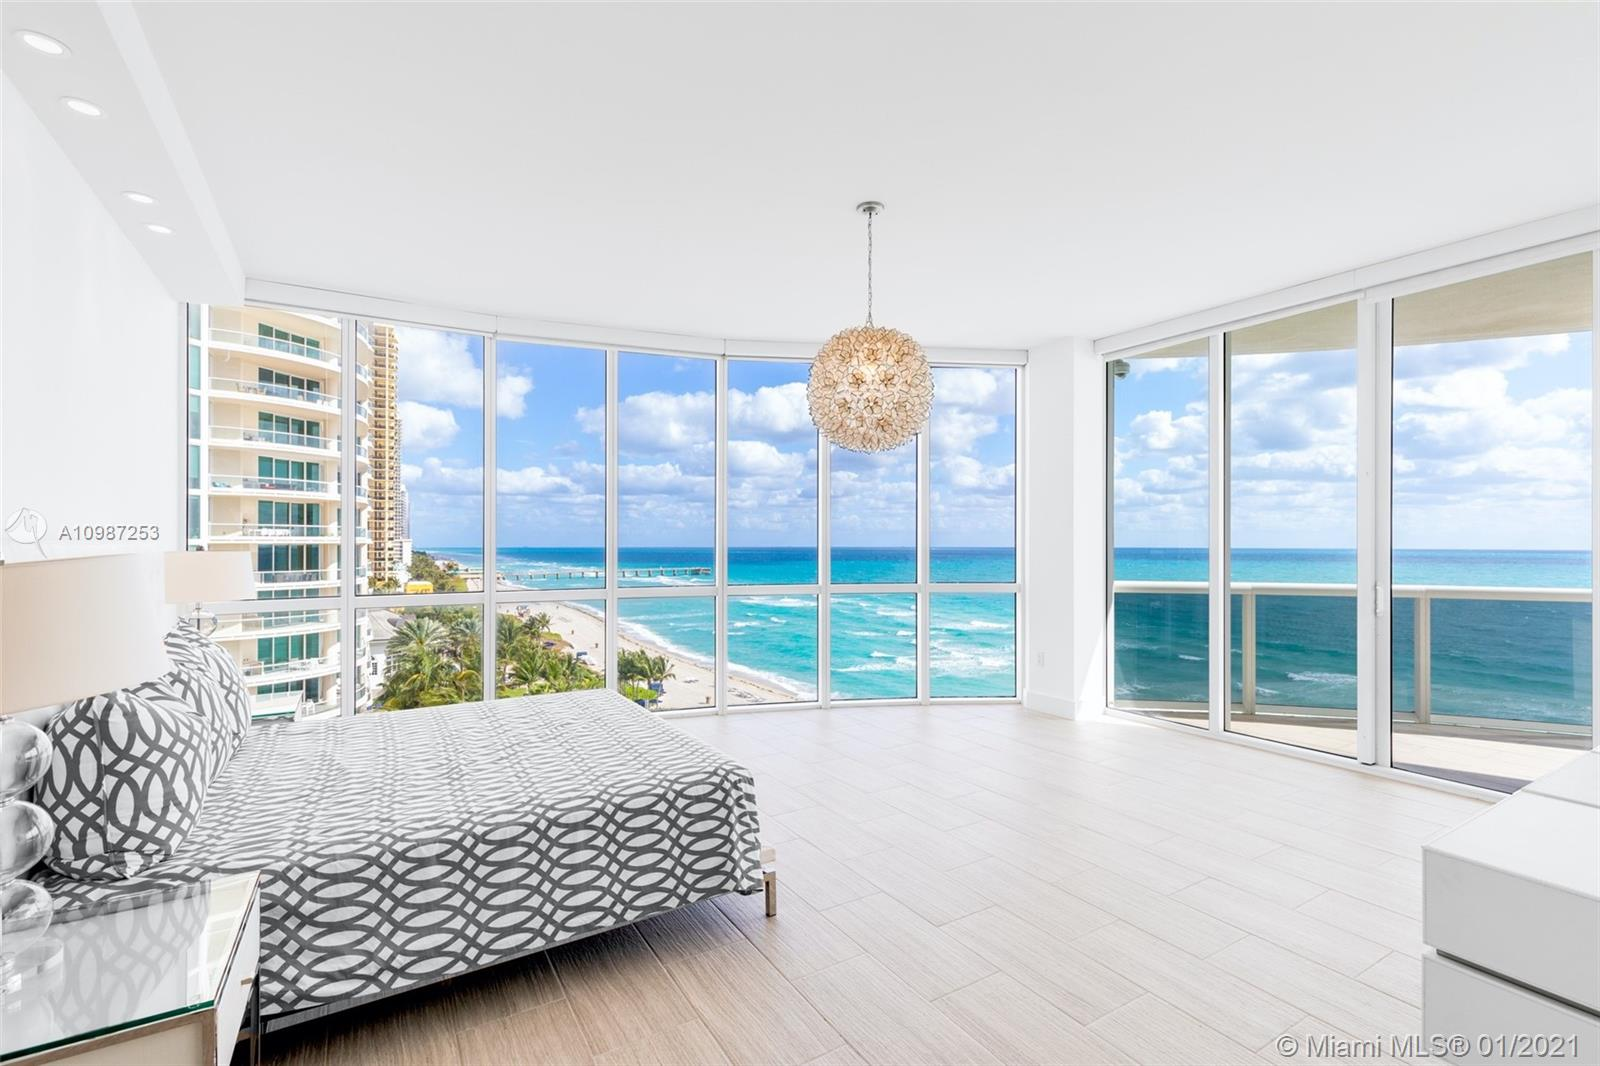 Luxury condo for sale in Sunny Isles Beach. ASSIGNED TANDEM PARKING (2 PARKING SPACES) INCLUDED IN THE SALE (WORTH AROUND $65,000-$75,000) Breathtaking Ocean views, floor-to-ceiling windows throughout and an expansive terrace overlooking the ocean. 3 bedrooms, 3,5 bathrooms unit located in the exclusive beachfront Trump Tower I. Full service building with valet parking, private restaurant on site, beach service, fitness center, Pool, Security and Spa. This unit features 11 foot ceilings, private elevator and foyer, remote controlled blinds and top-of-the-line appliances. Perfect location, just minutes away from Bal Harbour, Aventura and Miami Beach. Tenant occupied till September 14th 2022.